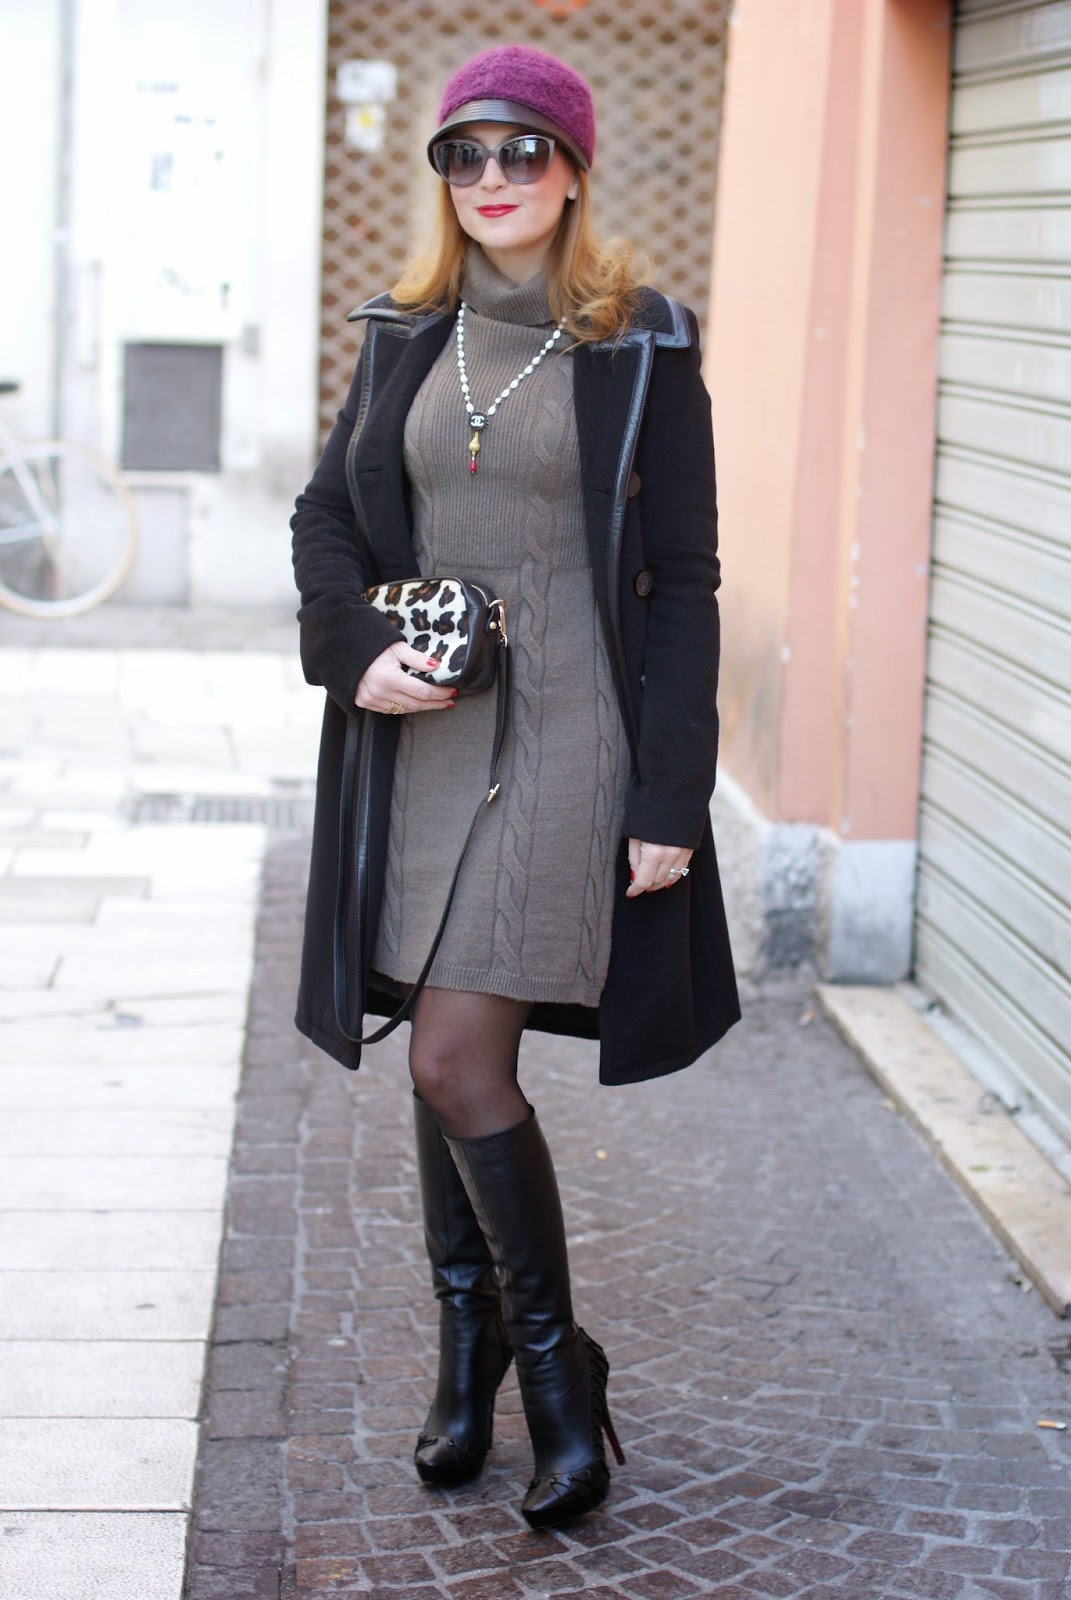 Balenciaga black coat, Fetish boots, Sofia borse Candy pochette, Fashion and Cookies, fashion blogger